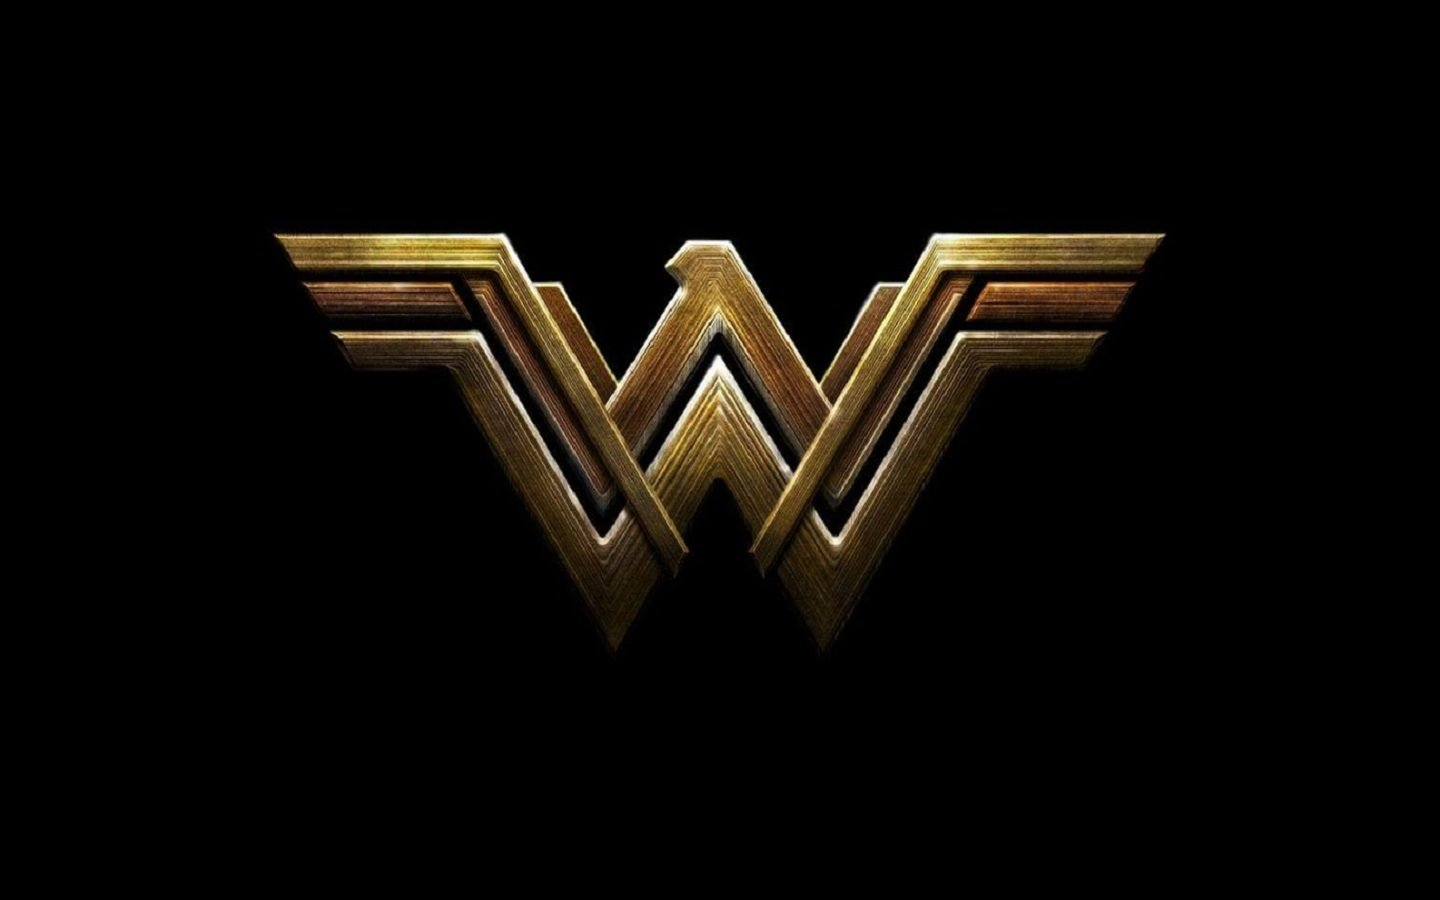 Superman Wall Sticker Wonder Woman Gal Gadot Movie Logo Fond D 233 Cran And Arri 232 Re